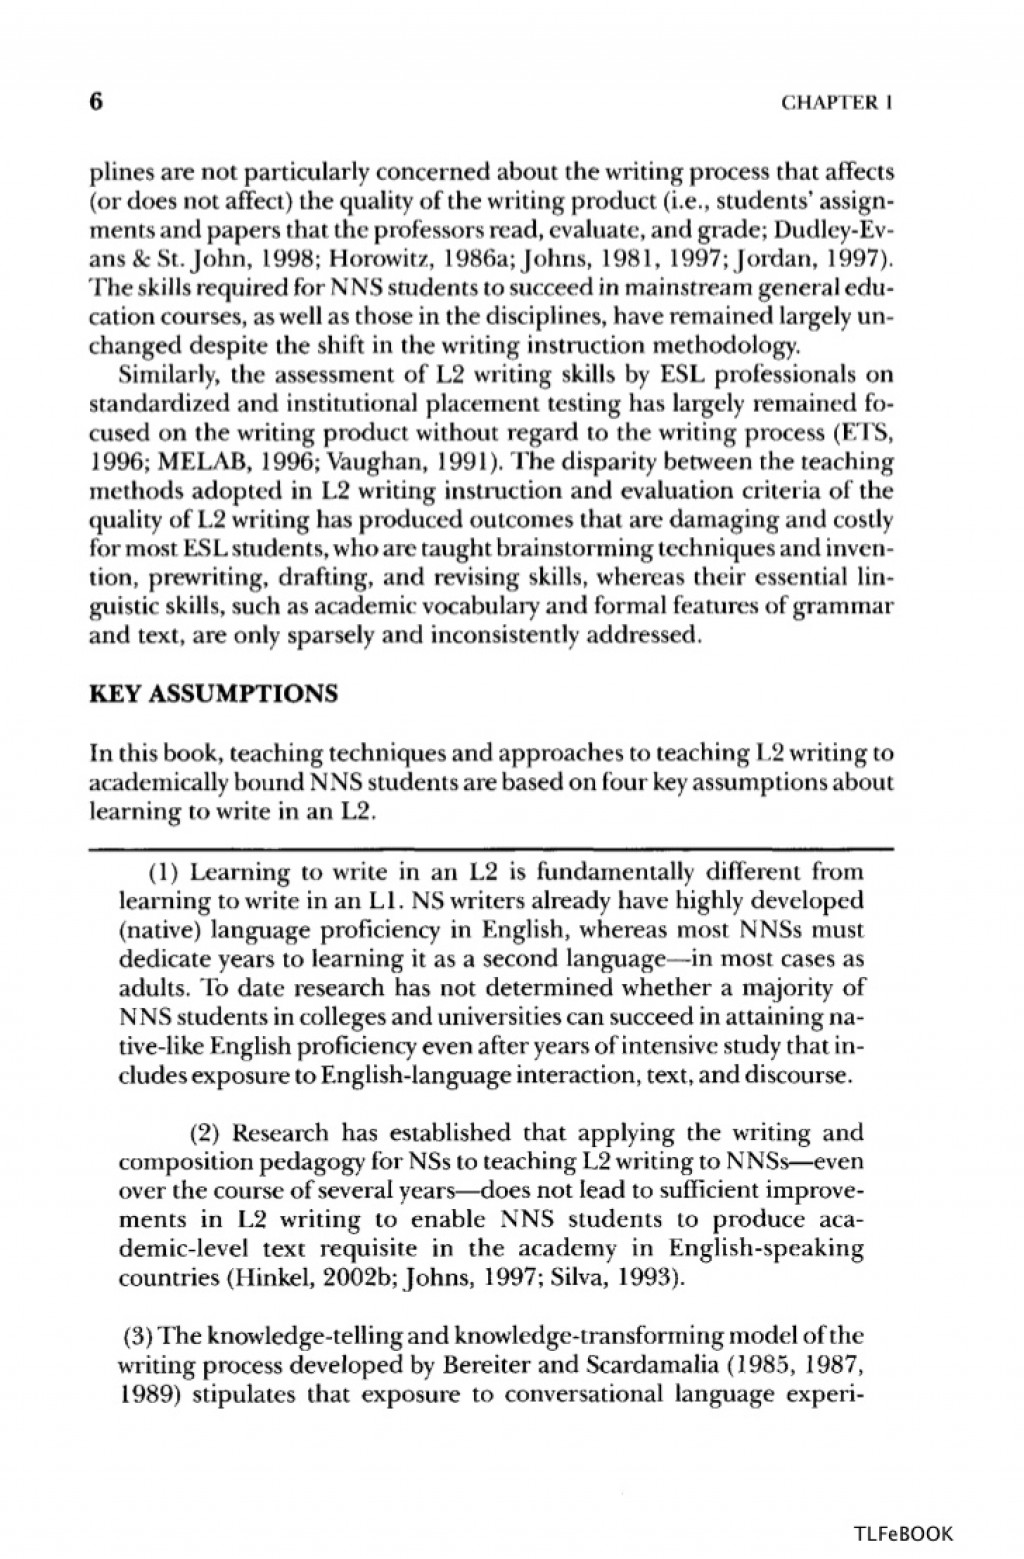 008 Essay Example English Teaching Academic Esl Writing Practical Techniques In Vocabulary And Grammar On Top Football Match For Class 7 Player Large